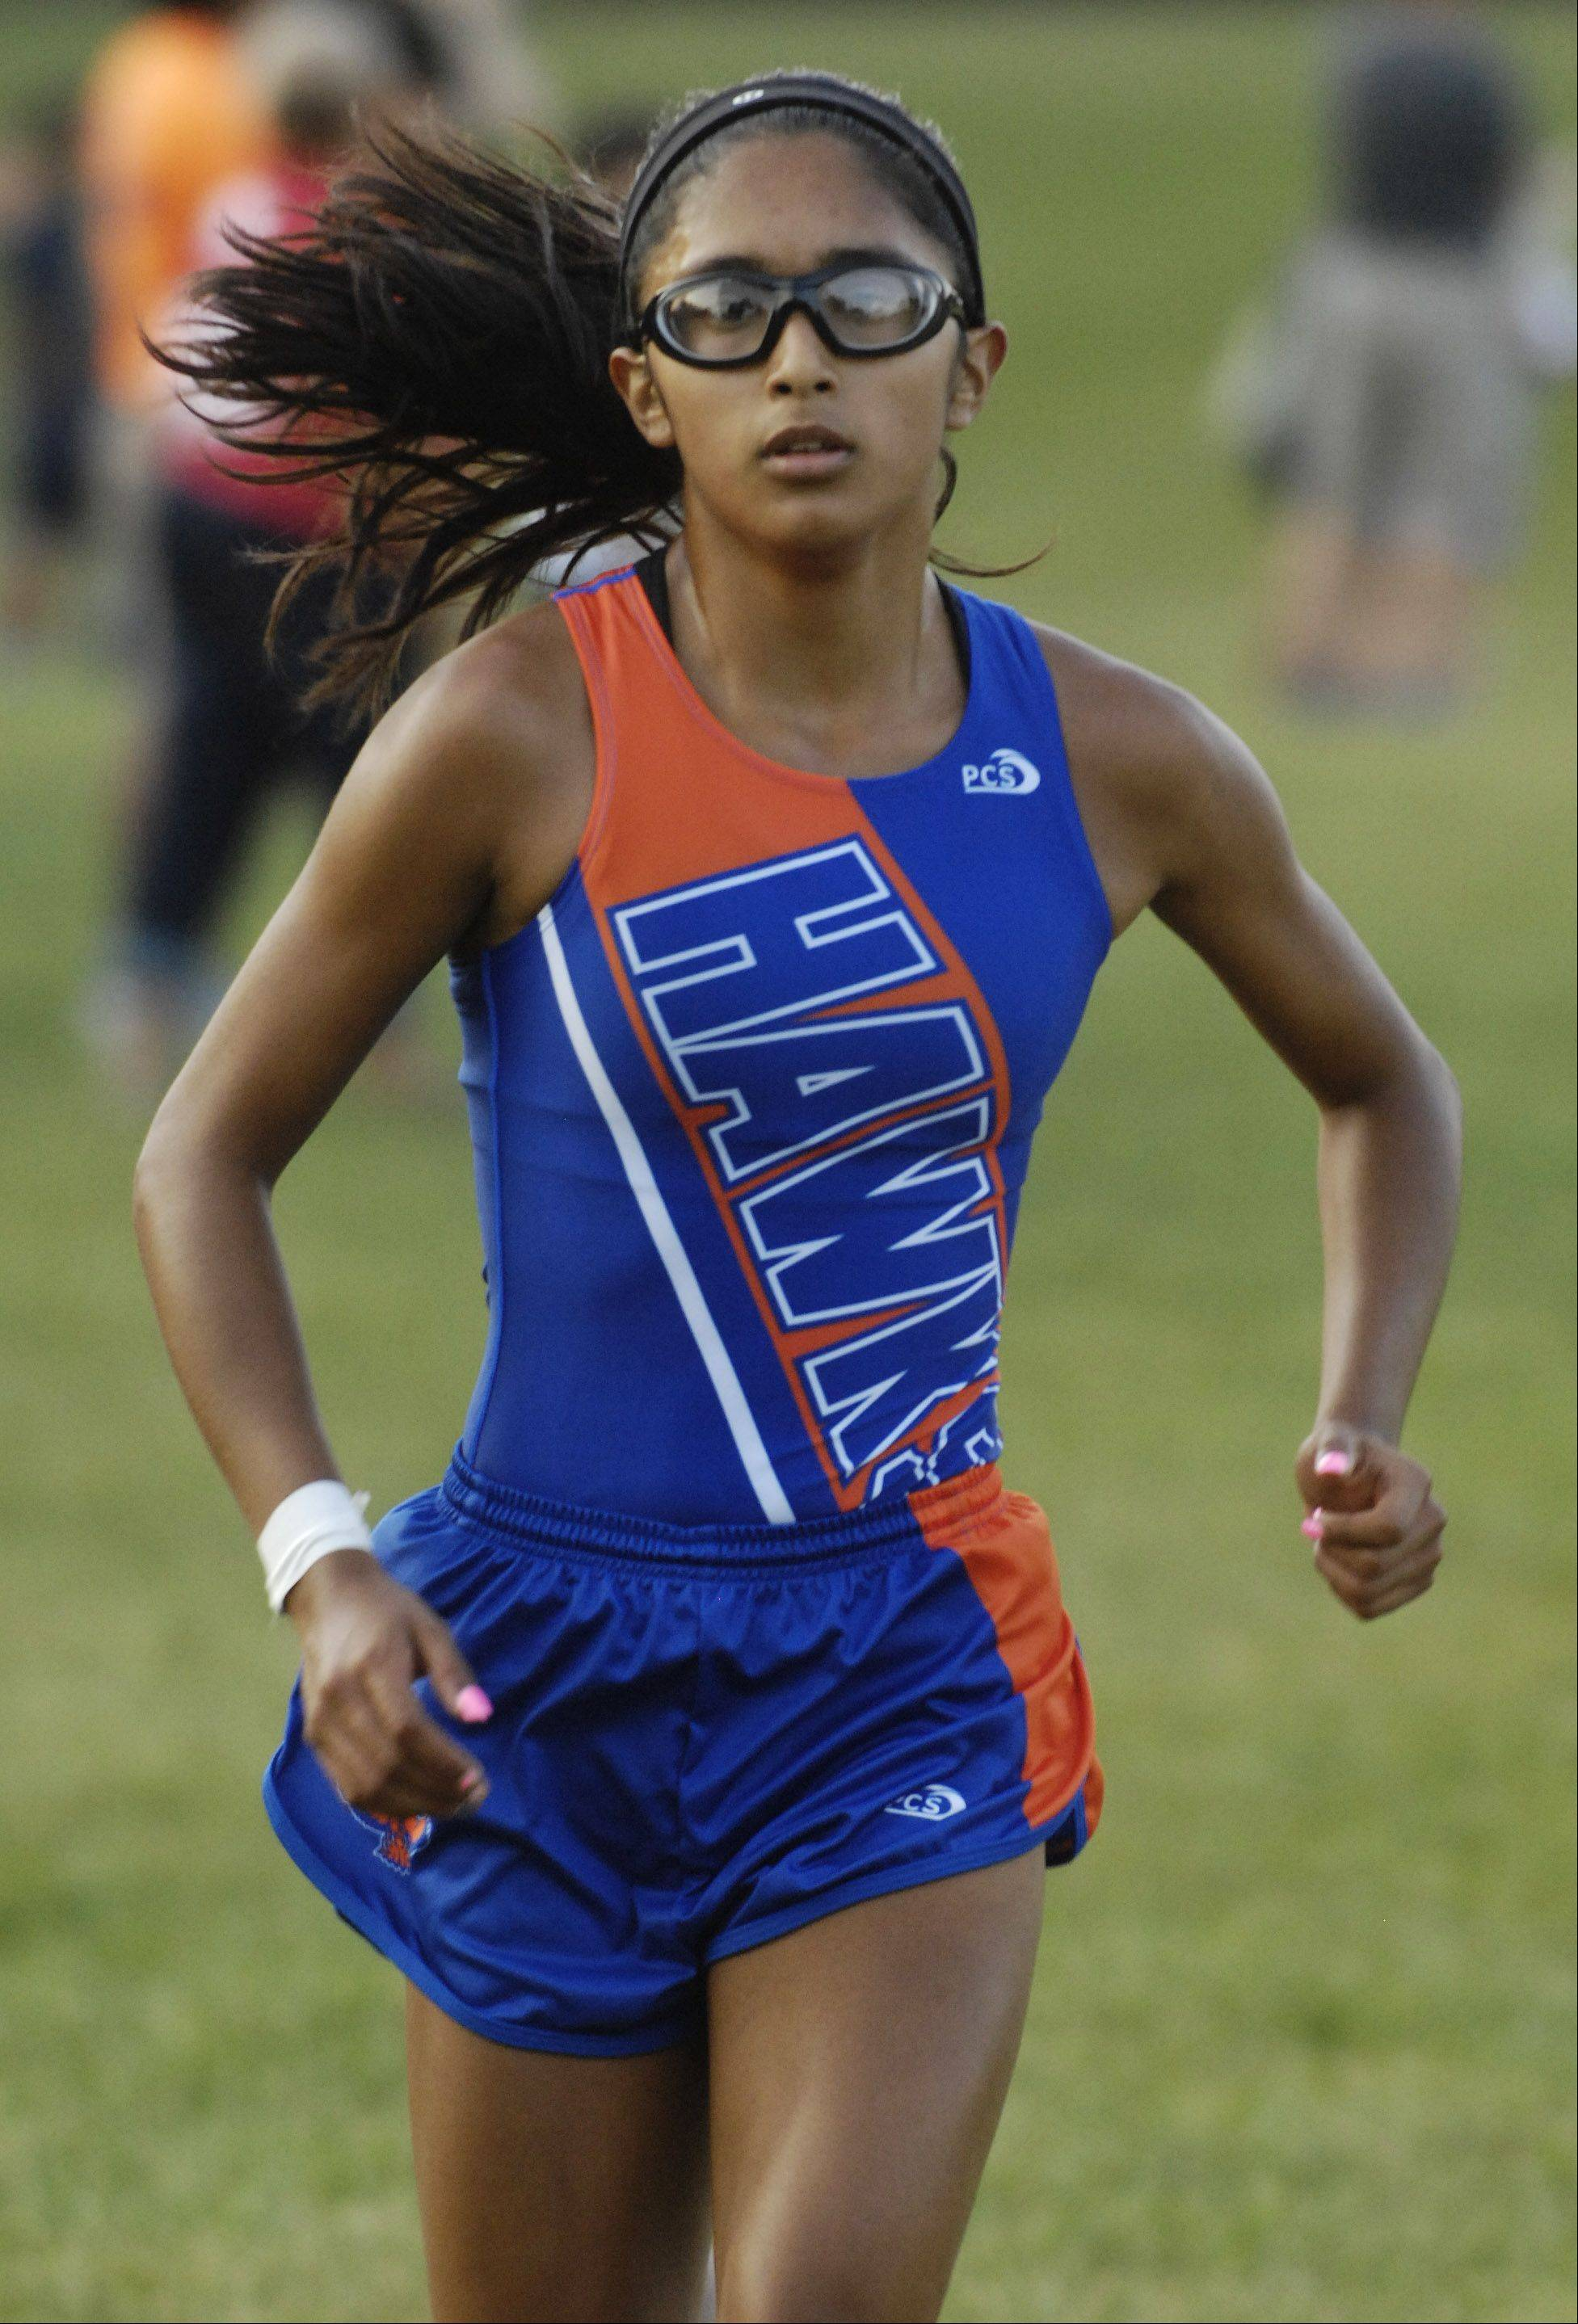 Hoffman Estates' Alondra Aguirre wins Tuesday's cross country meet with Prospect at Barrington Pond.